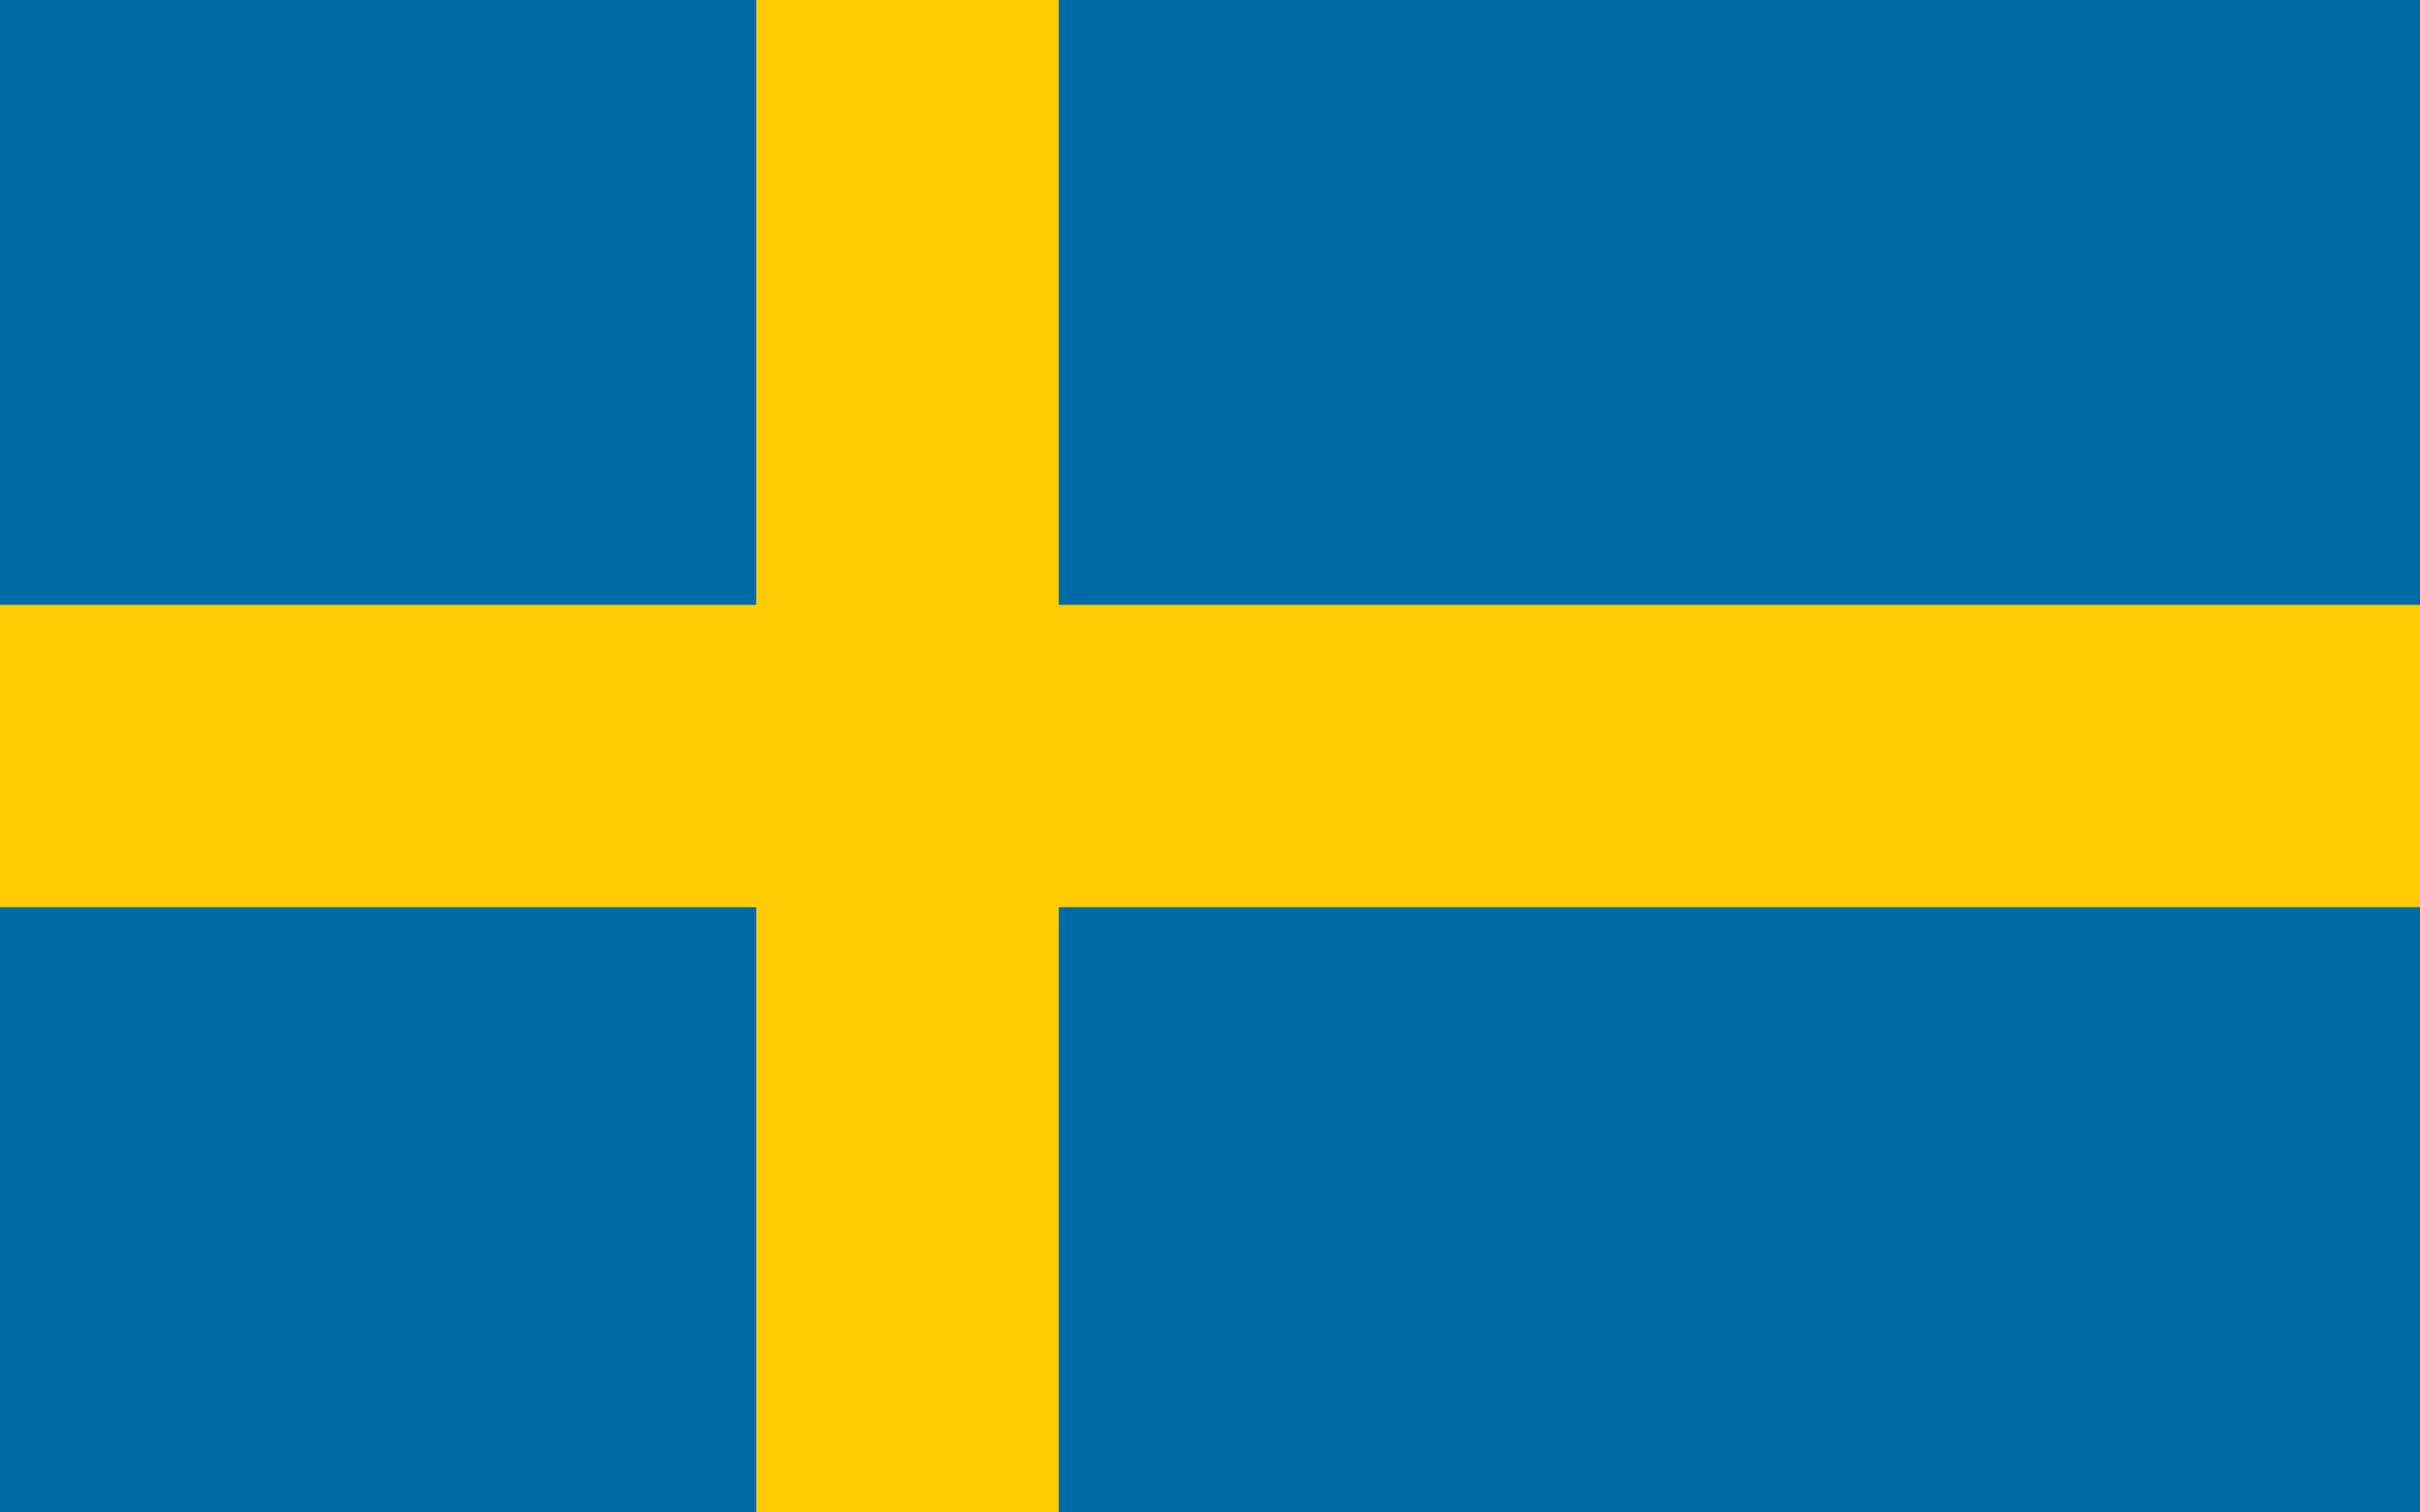 Sweden